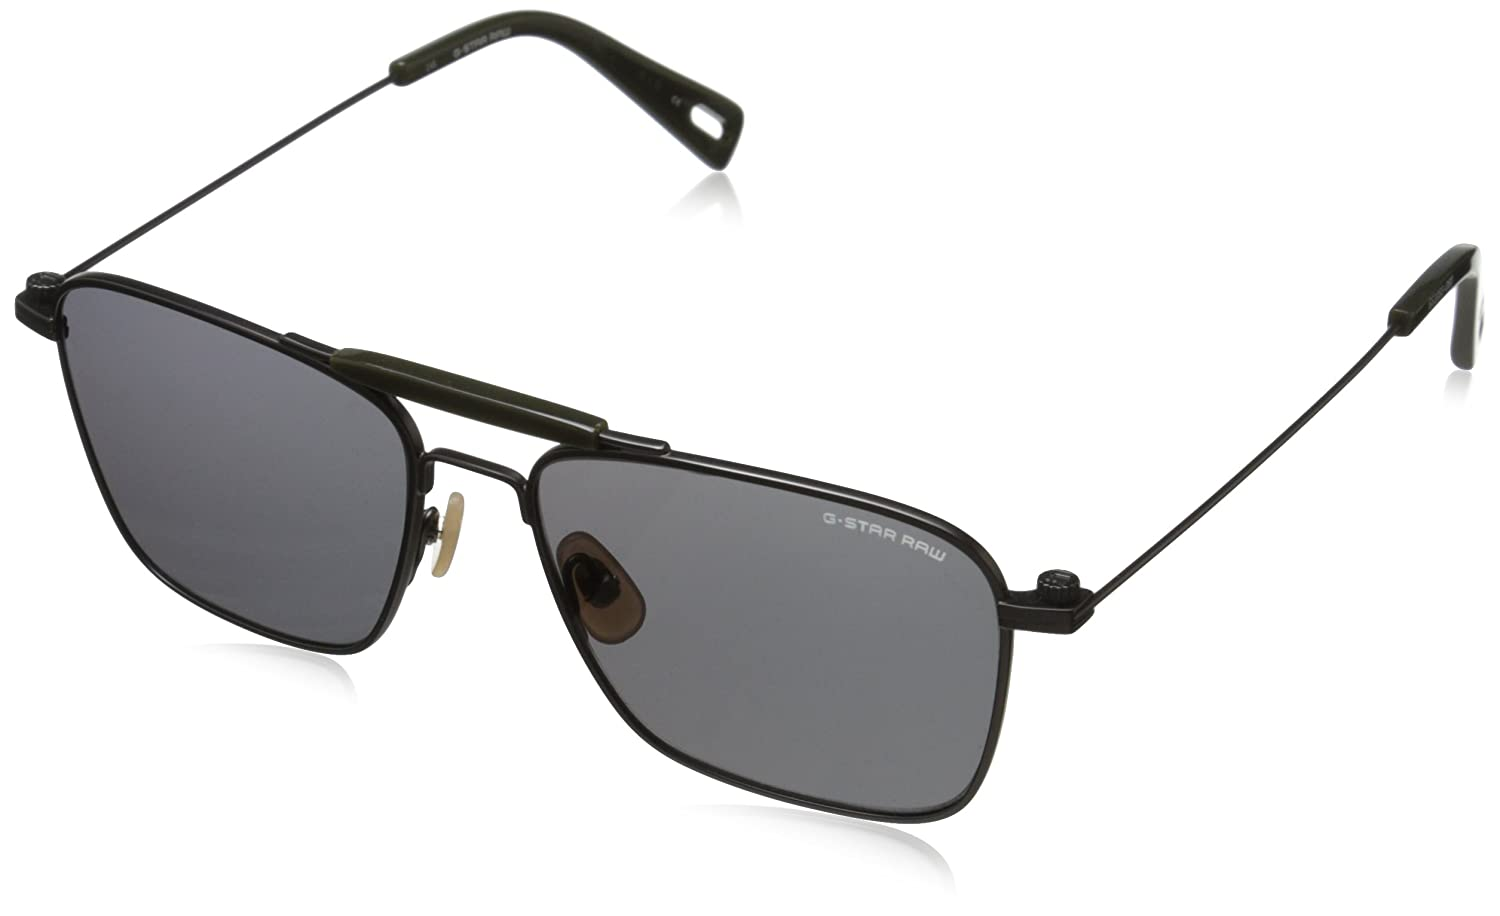 G Star Gafas de Sol GS-105S-060 (54 mm) Negro/Verde: Amazon ...